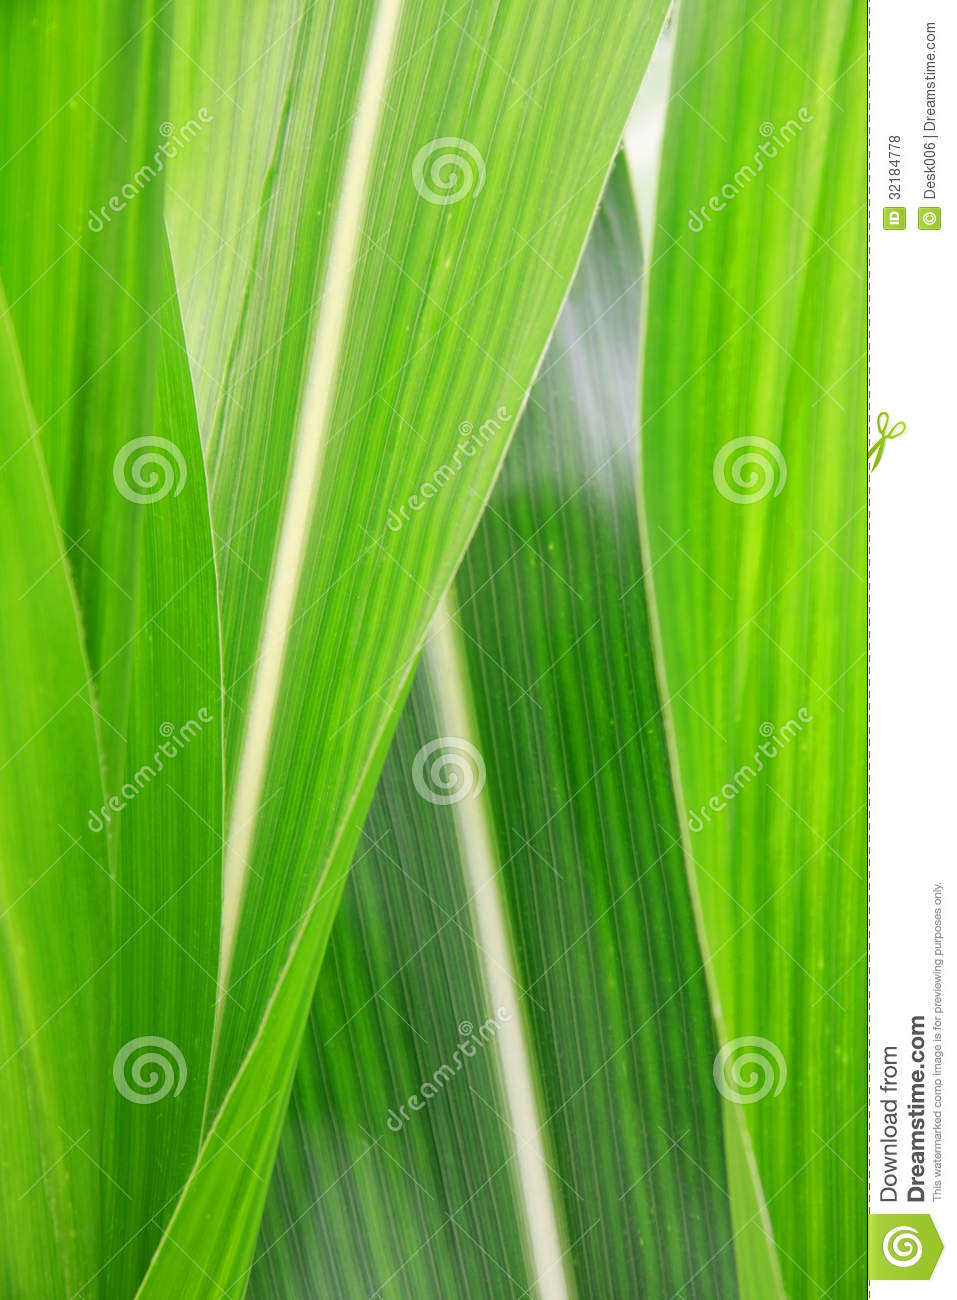 how to keep corn with leafs